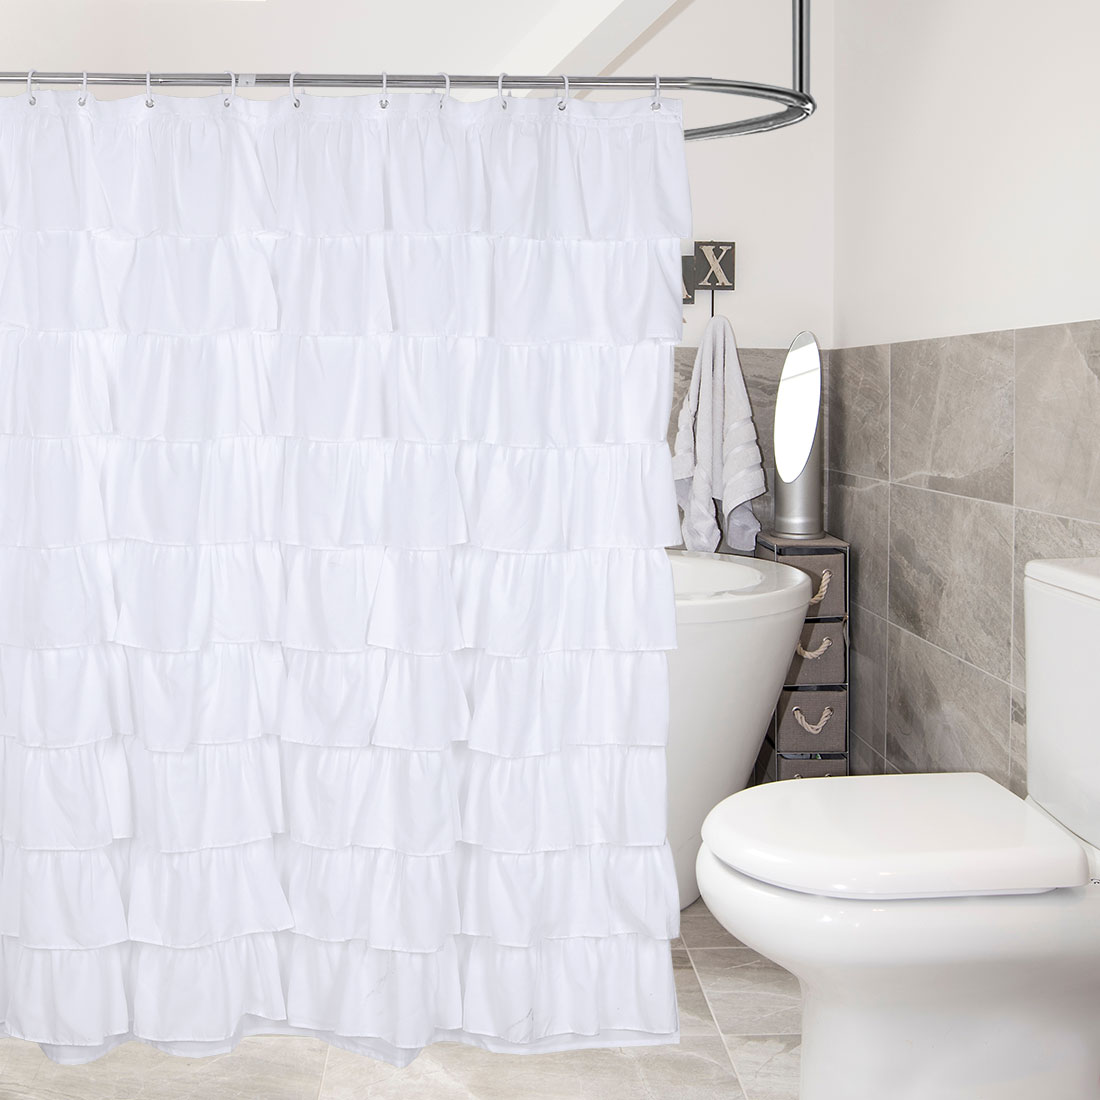 Ruffle Shower Curtain White Fabric Cloth Shower Curtains 12 Hooks, 72x72 Long